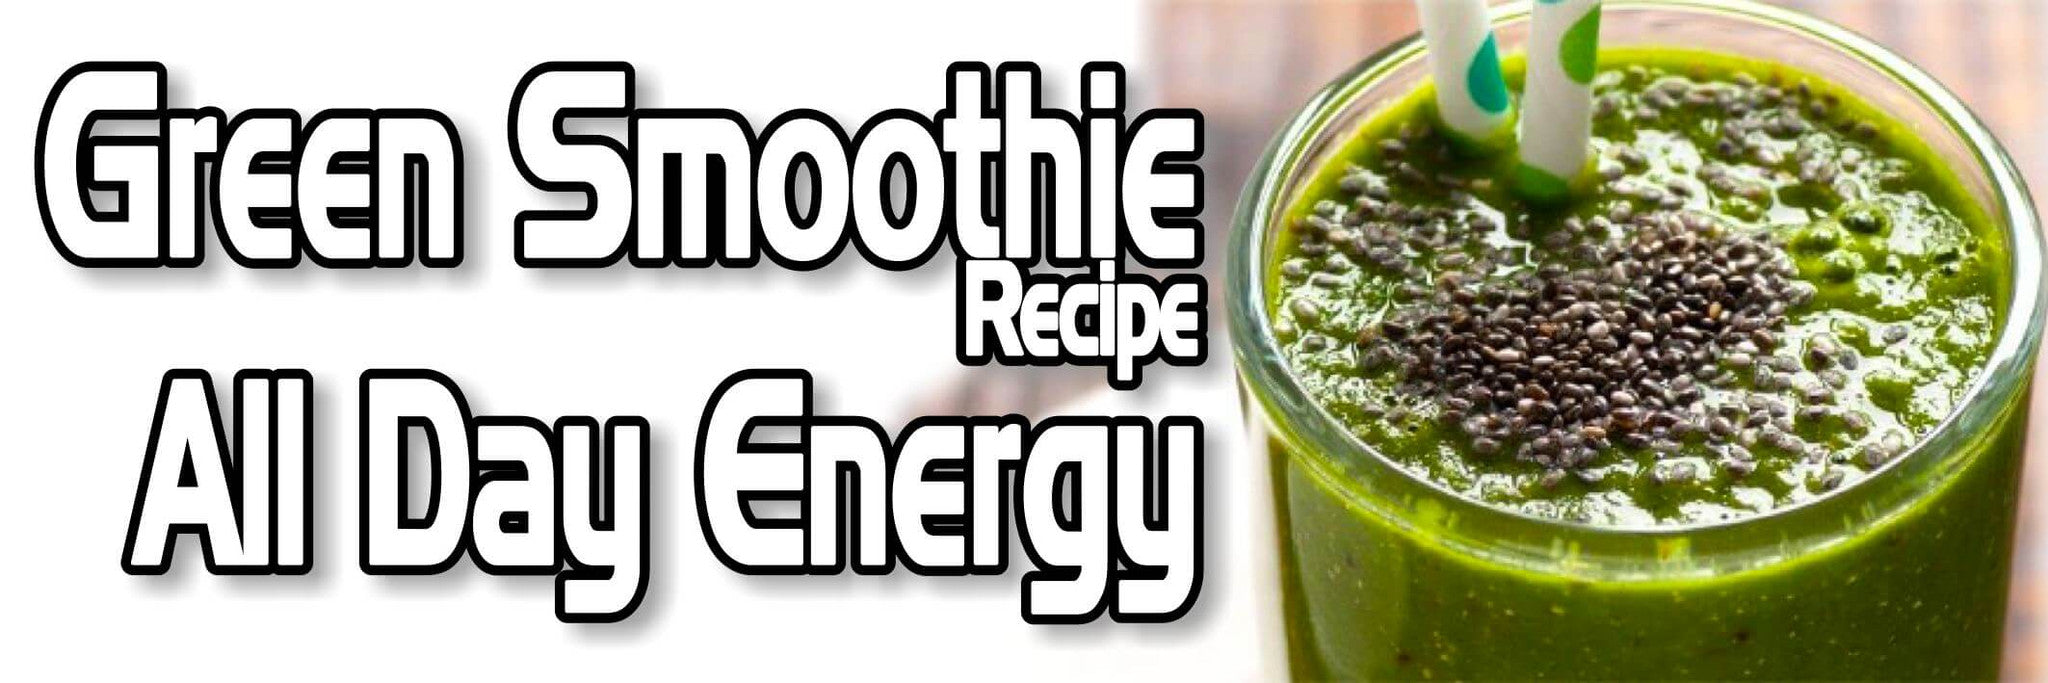 Green Smoothie Recipe - All Day Energy - Eternal Delight